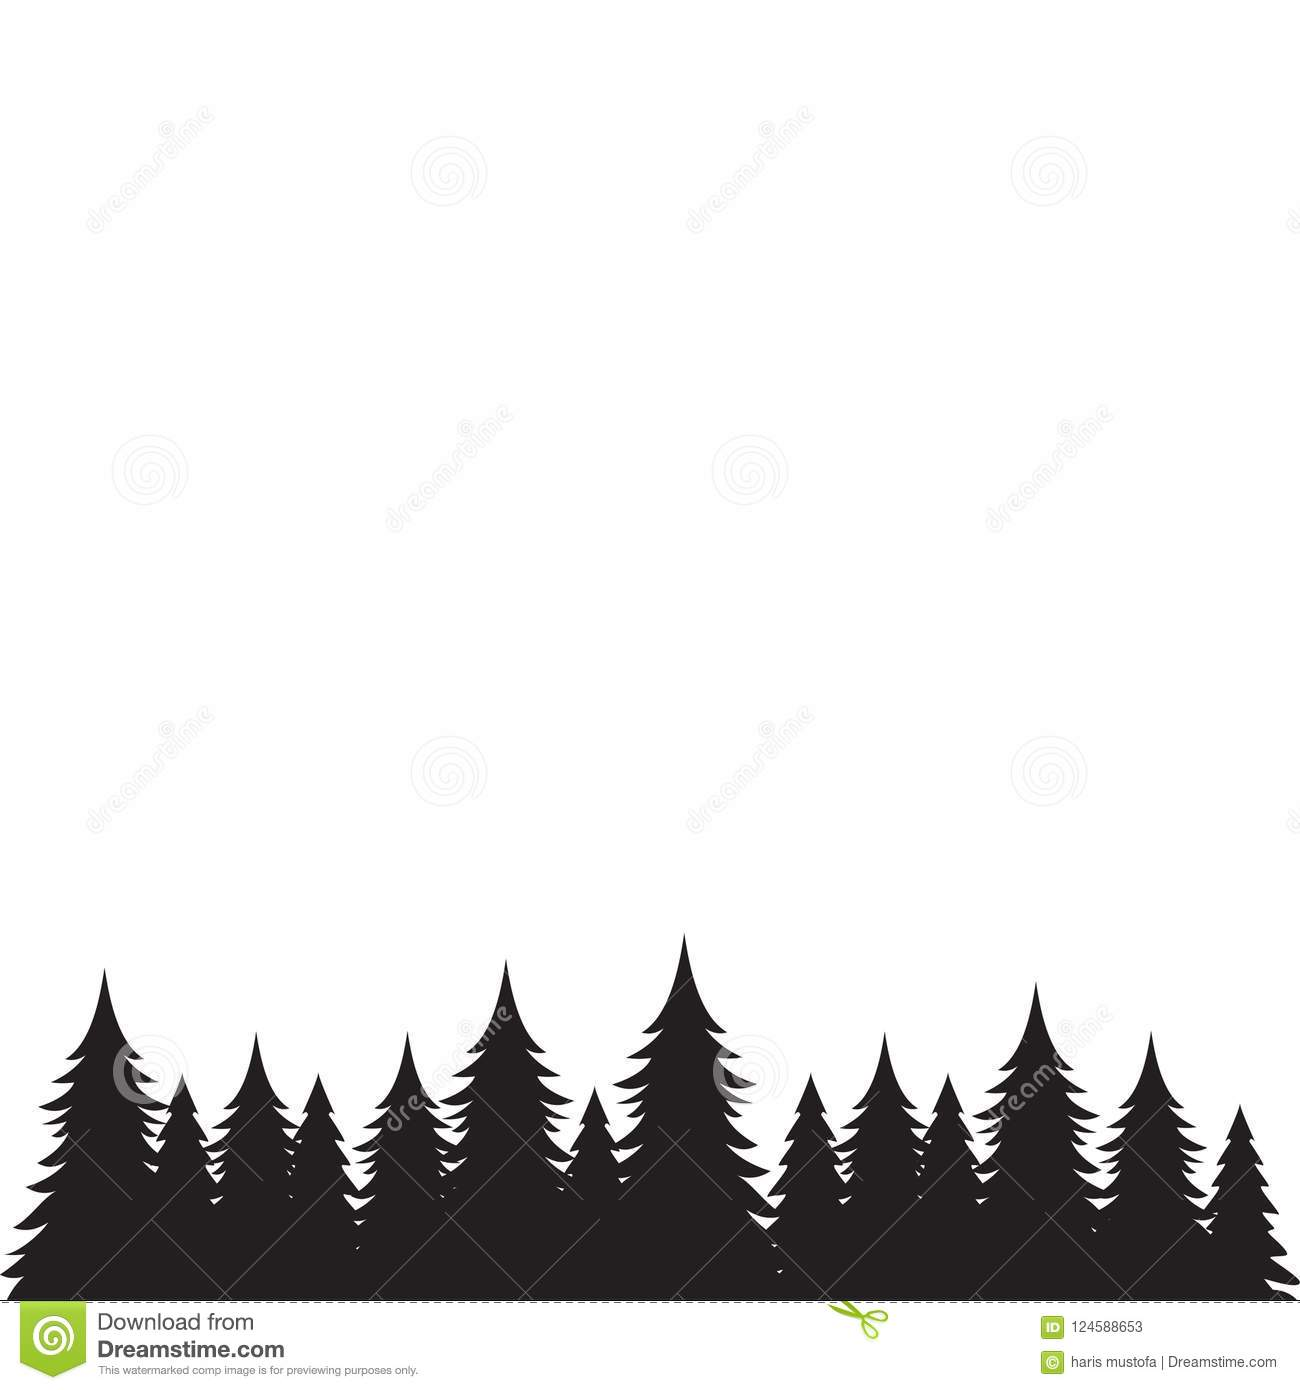 Background Of Pine Trees Graphic Design Stock Vector Illustration